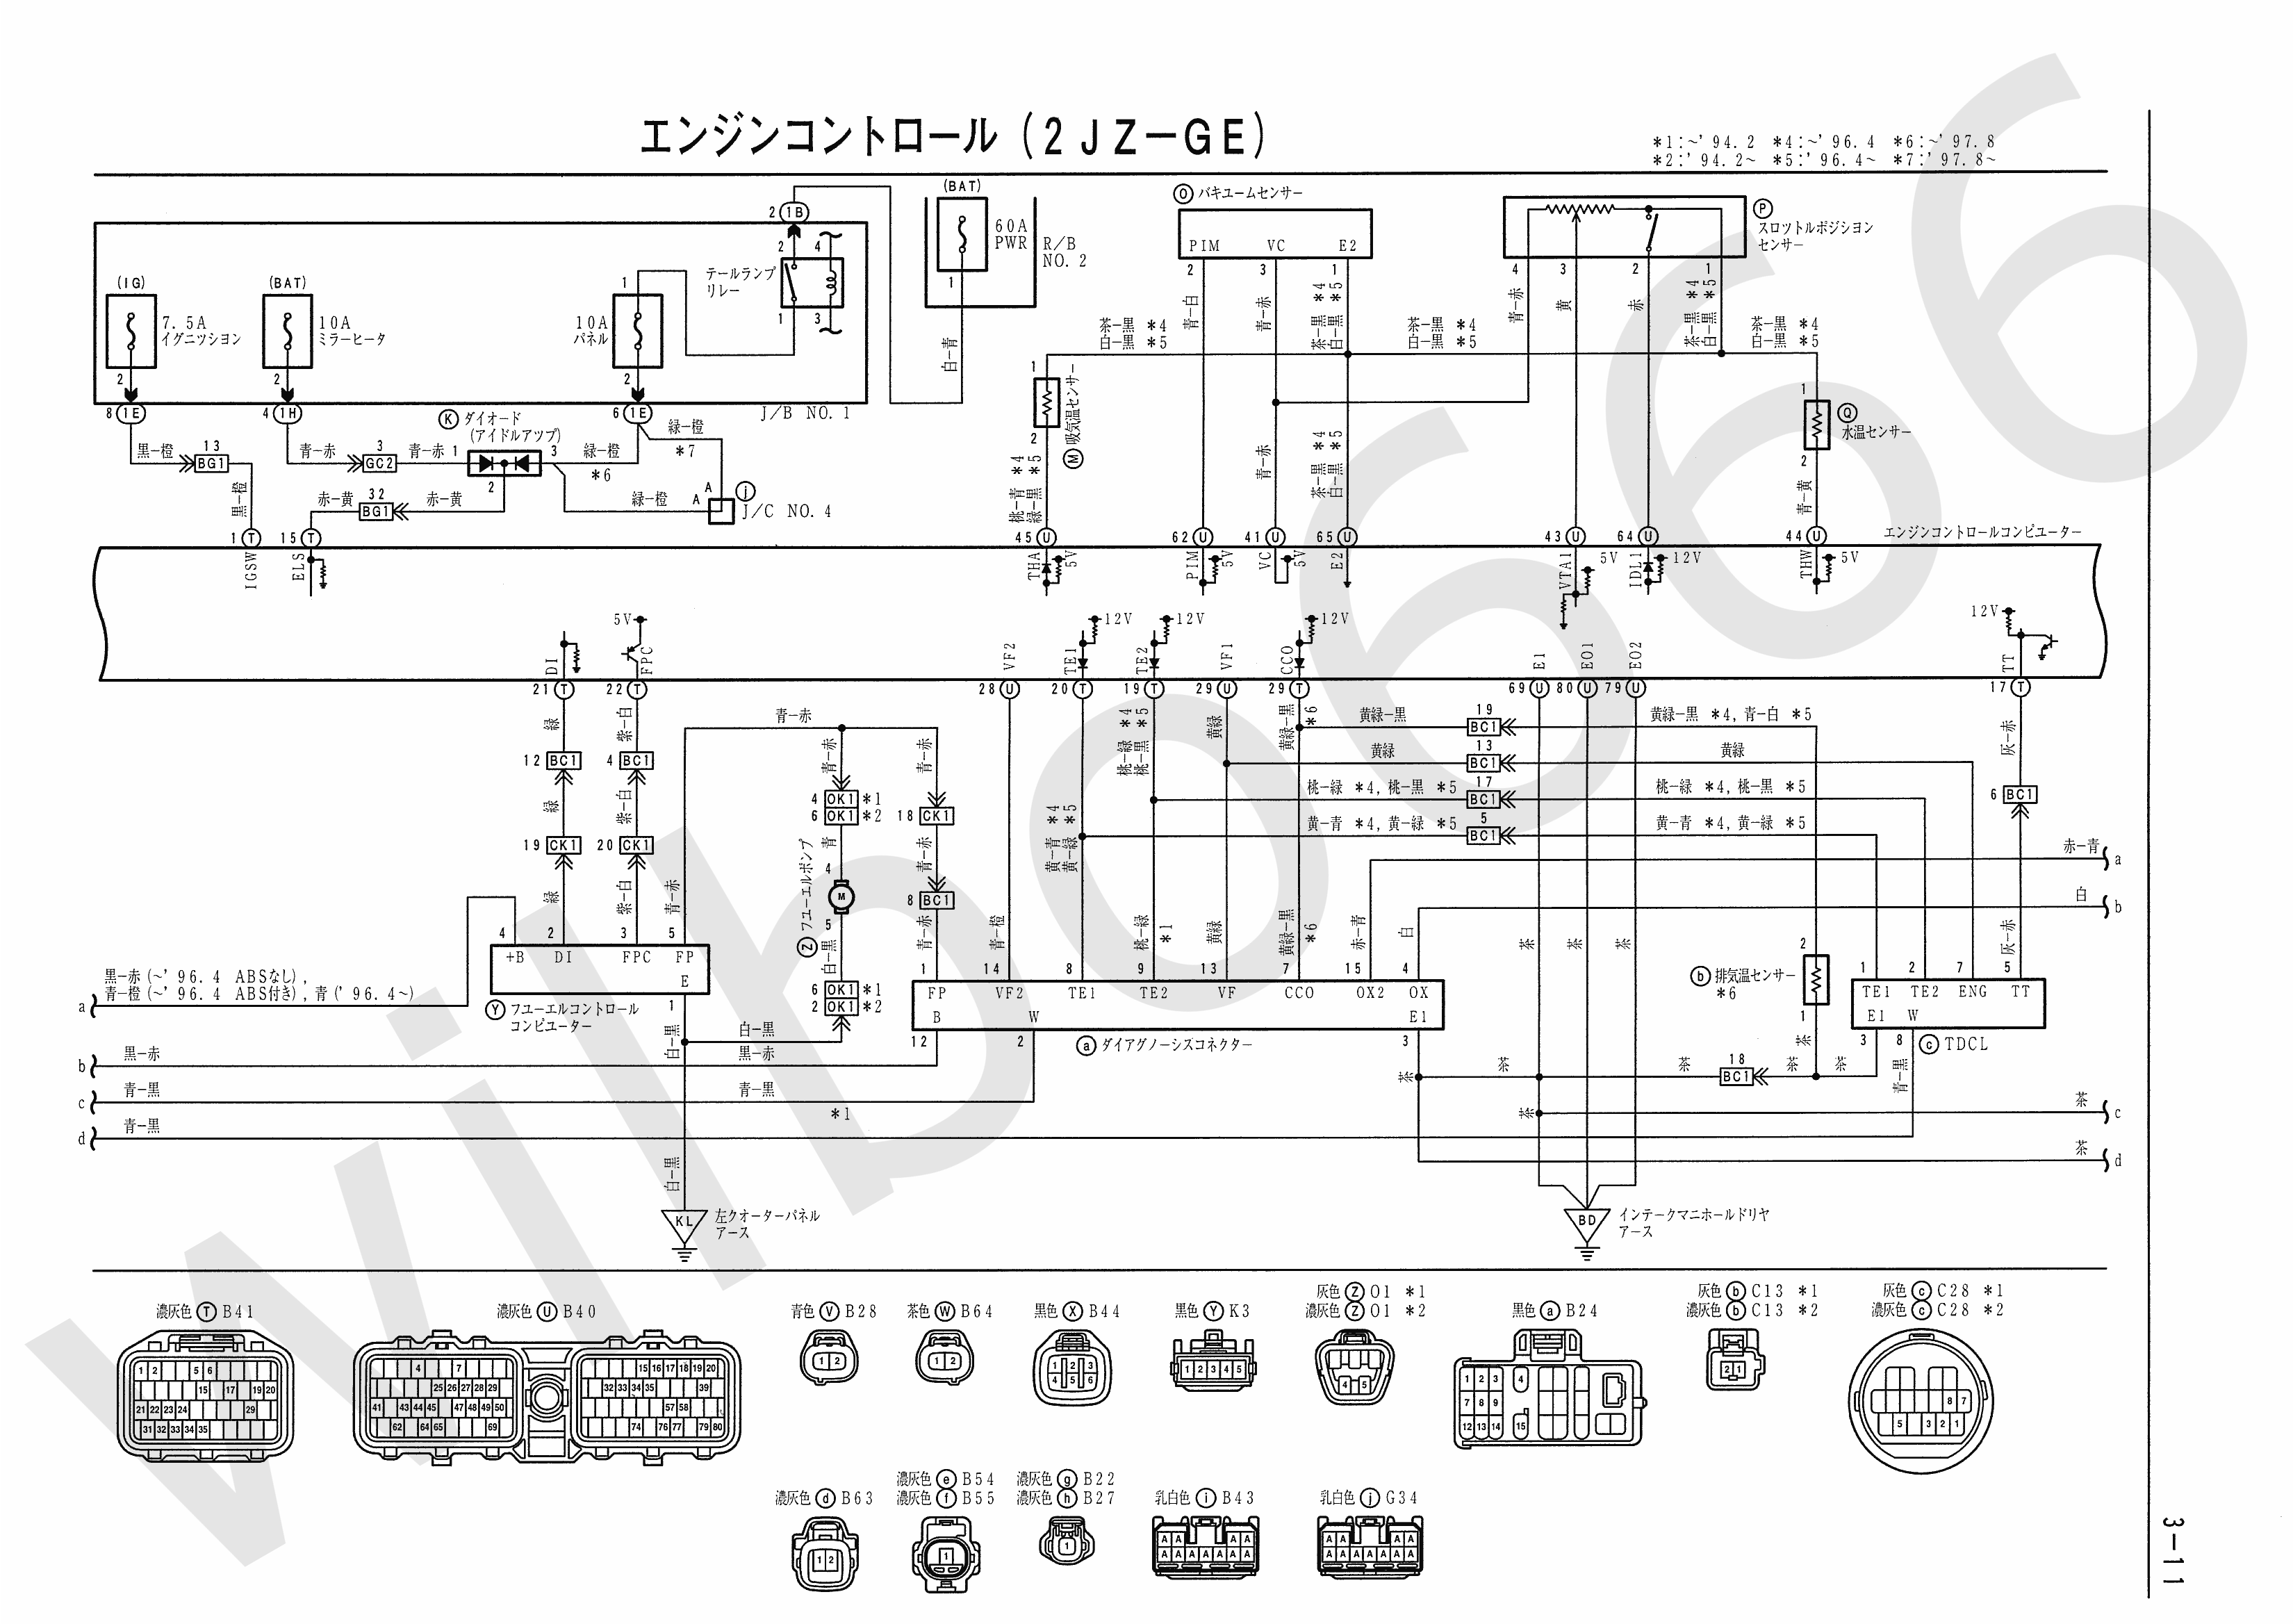 JZA80 Electrical Wiring Diagram 6742505 3 11 wilbo666 2jz ge jza80 supra engine wiring 2jz ge wiring diagram pdf at edmiracle.co